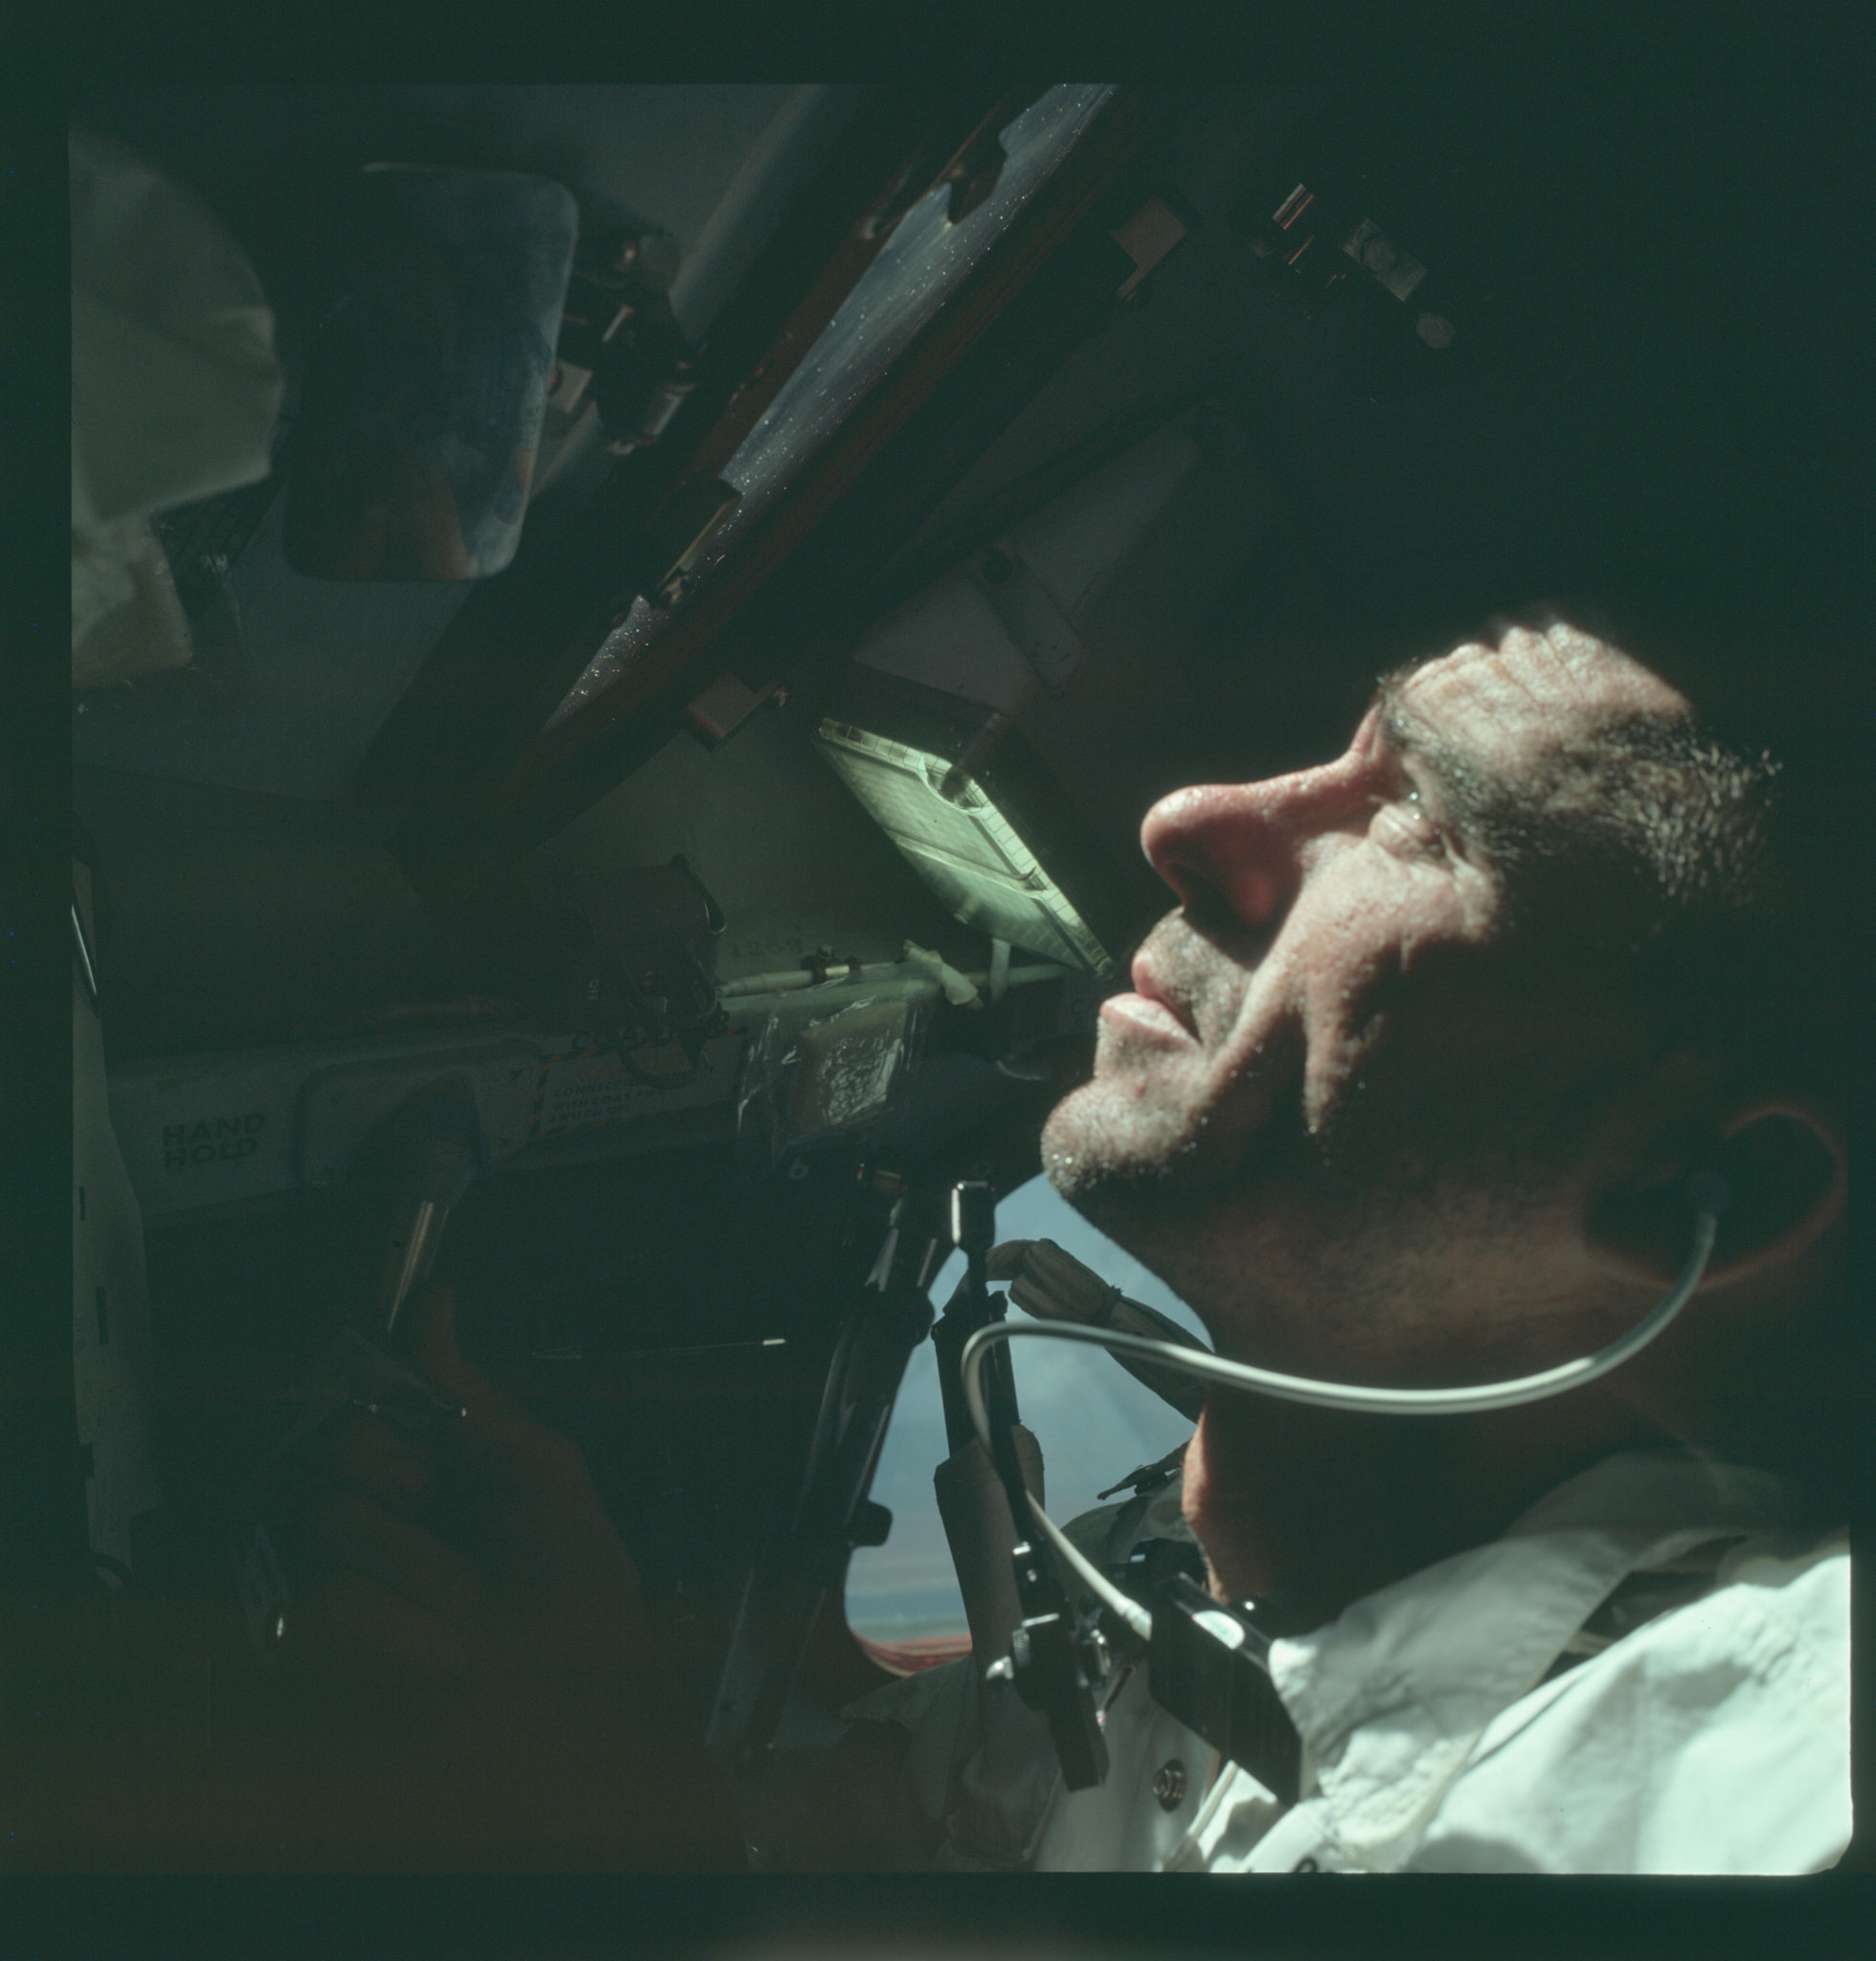 Apollo 7 Hasselblad image from film magazine 4/N - Earth Orbit - https://www.flickr.com/photos/projectapolloarchive/21322829193/in/album-72157657129869694/